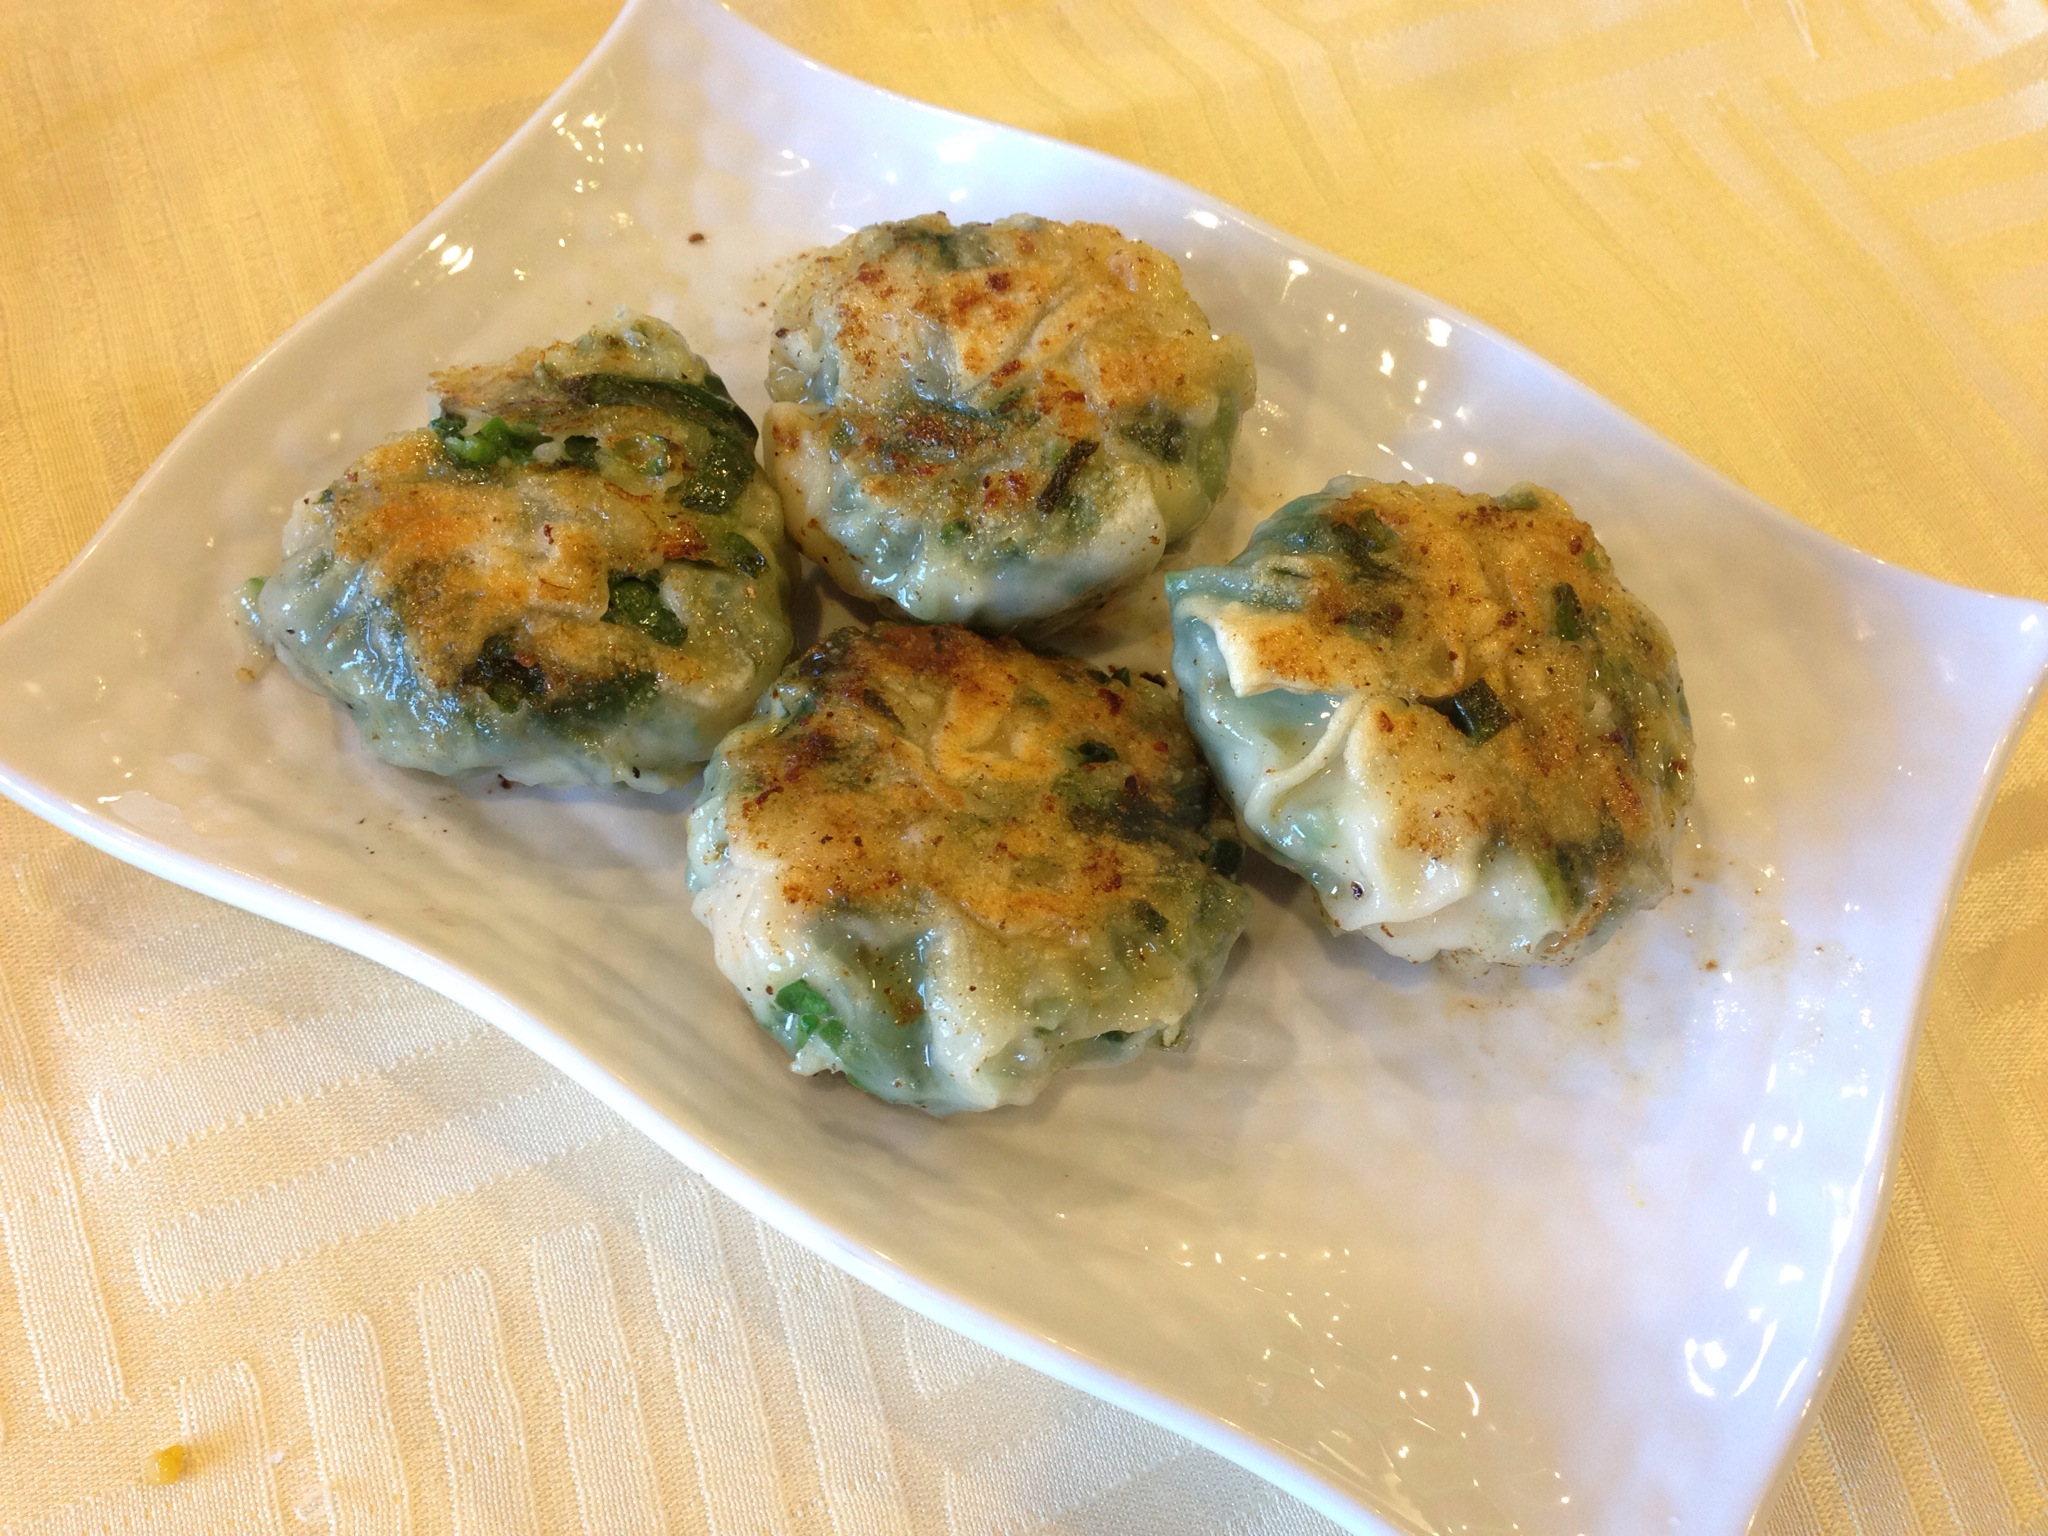 Chive Dumpling @ Tak Heng Hot Pot